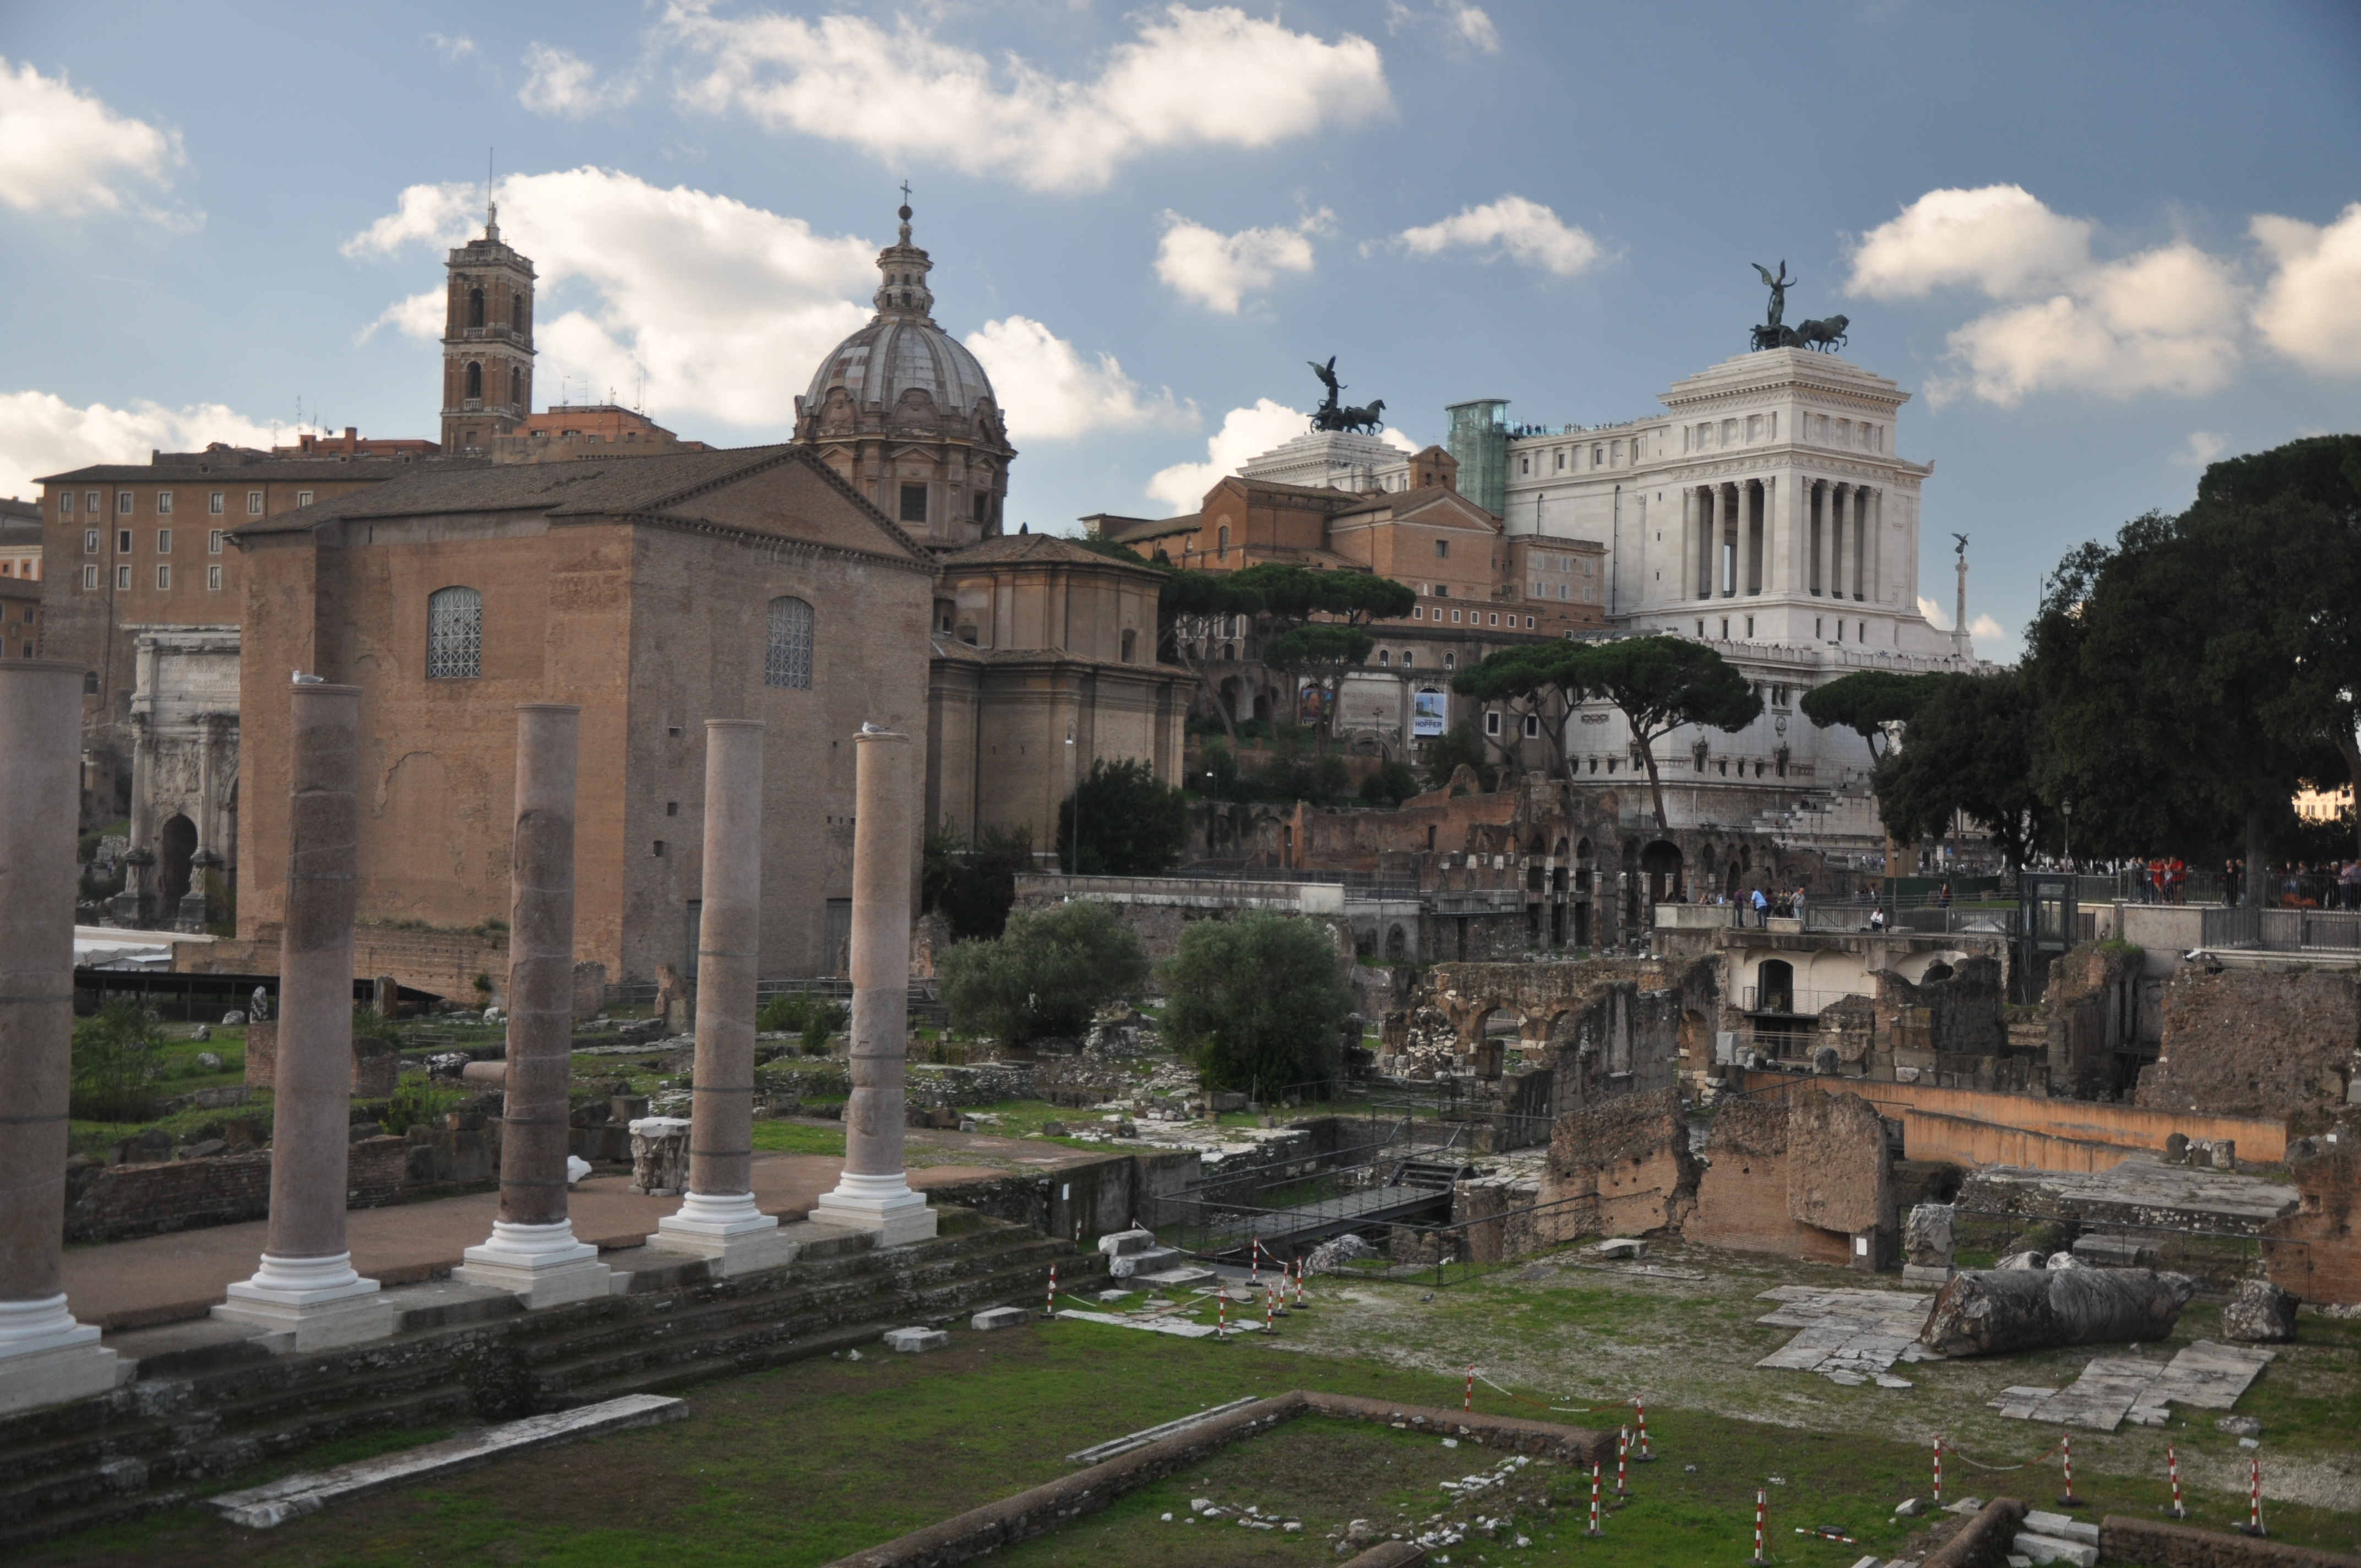 my trip to rome This $650 trip to rome was such a trip my husband and i would have paid $1300 total for us to both to fly to rome and back, stay in a hotel for 4 nights (6 days) while in rome breakfast would also have been included.